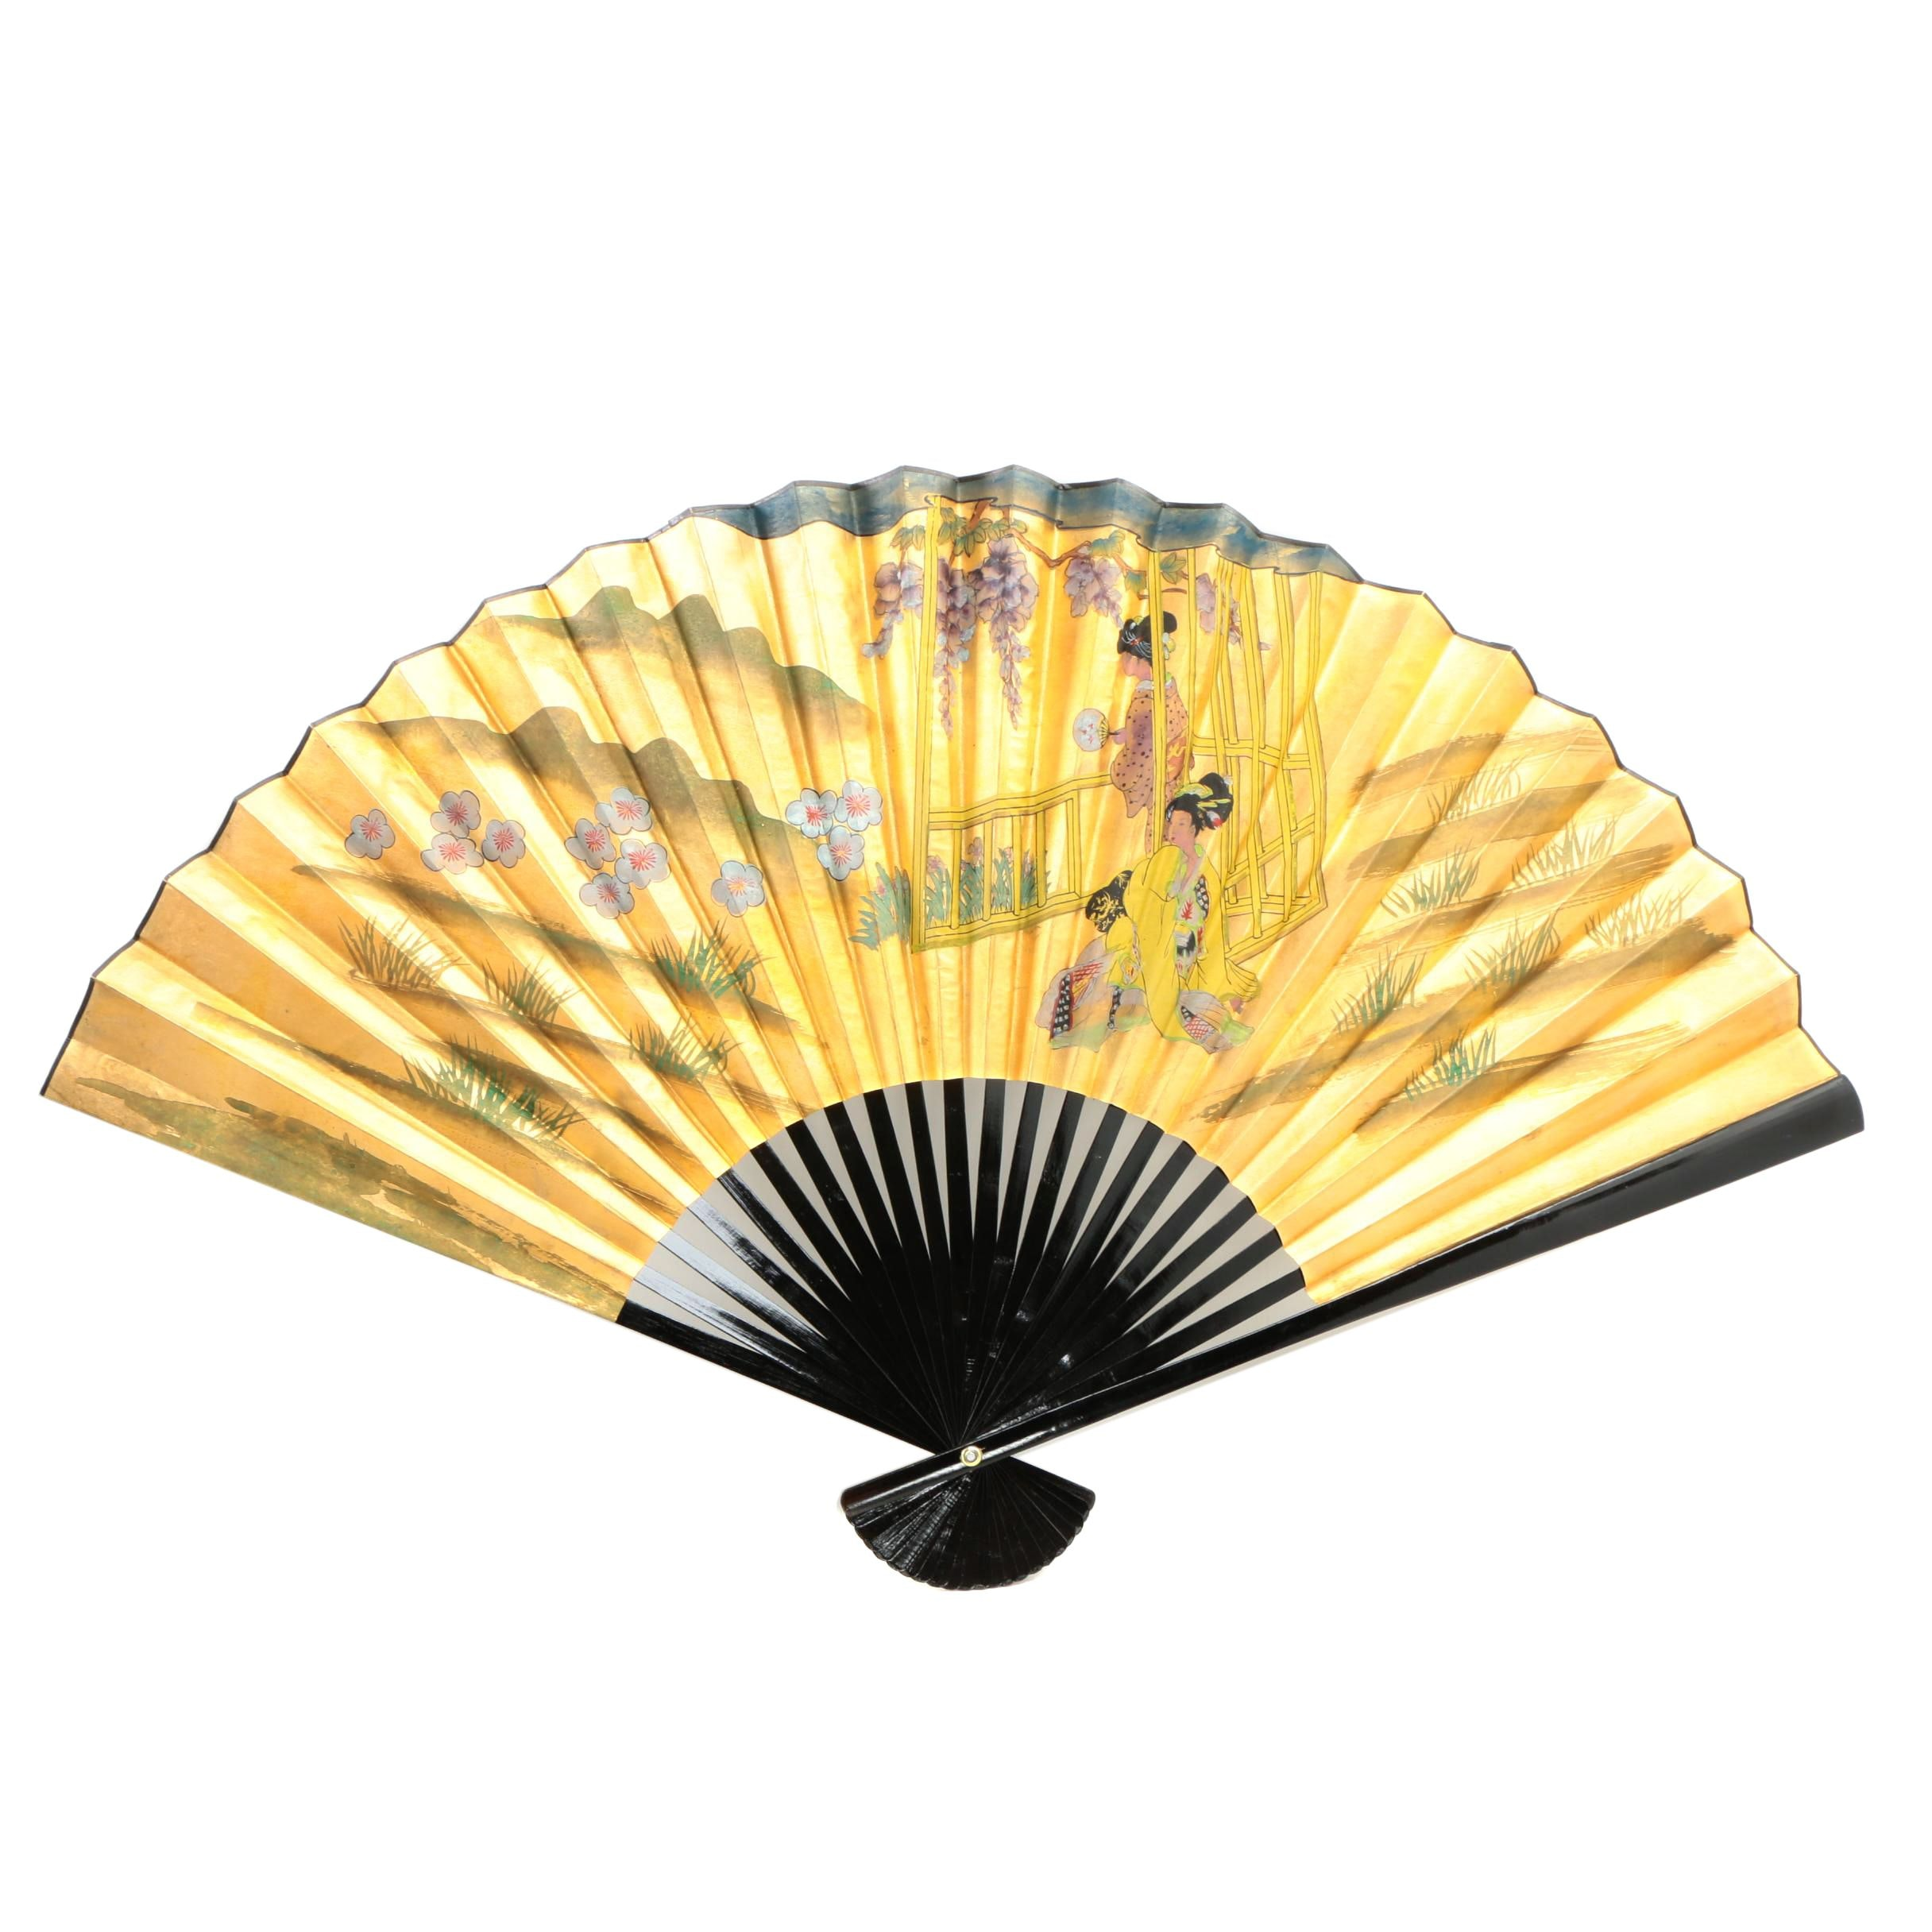 Japanese Inspired Large Decorative Paper Wall Fan with Lacquer Frame